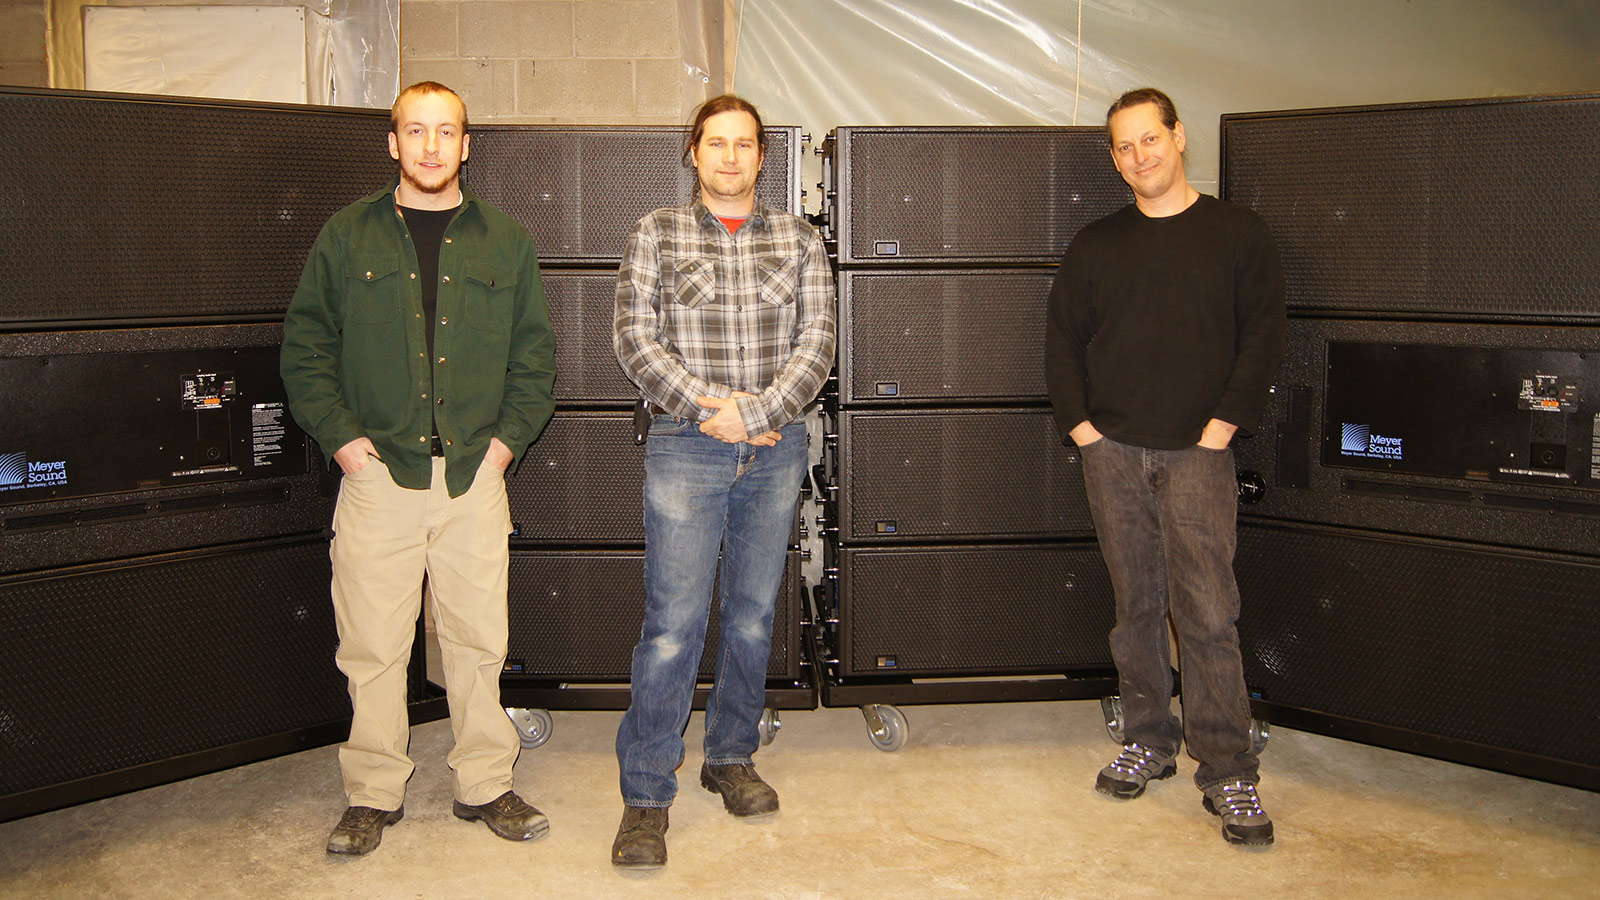 L to R: Cole Gamber, Systems Engineer; Mike Shoulson, Vice President; Dave Brotman